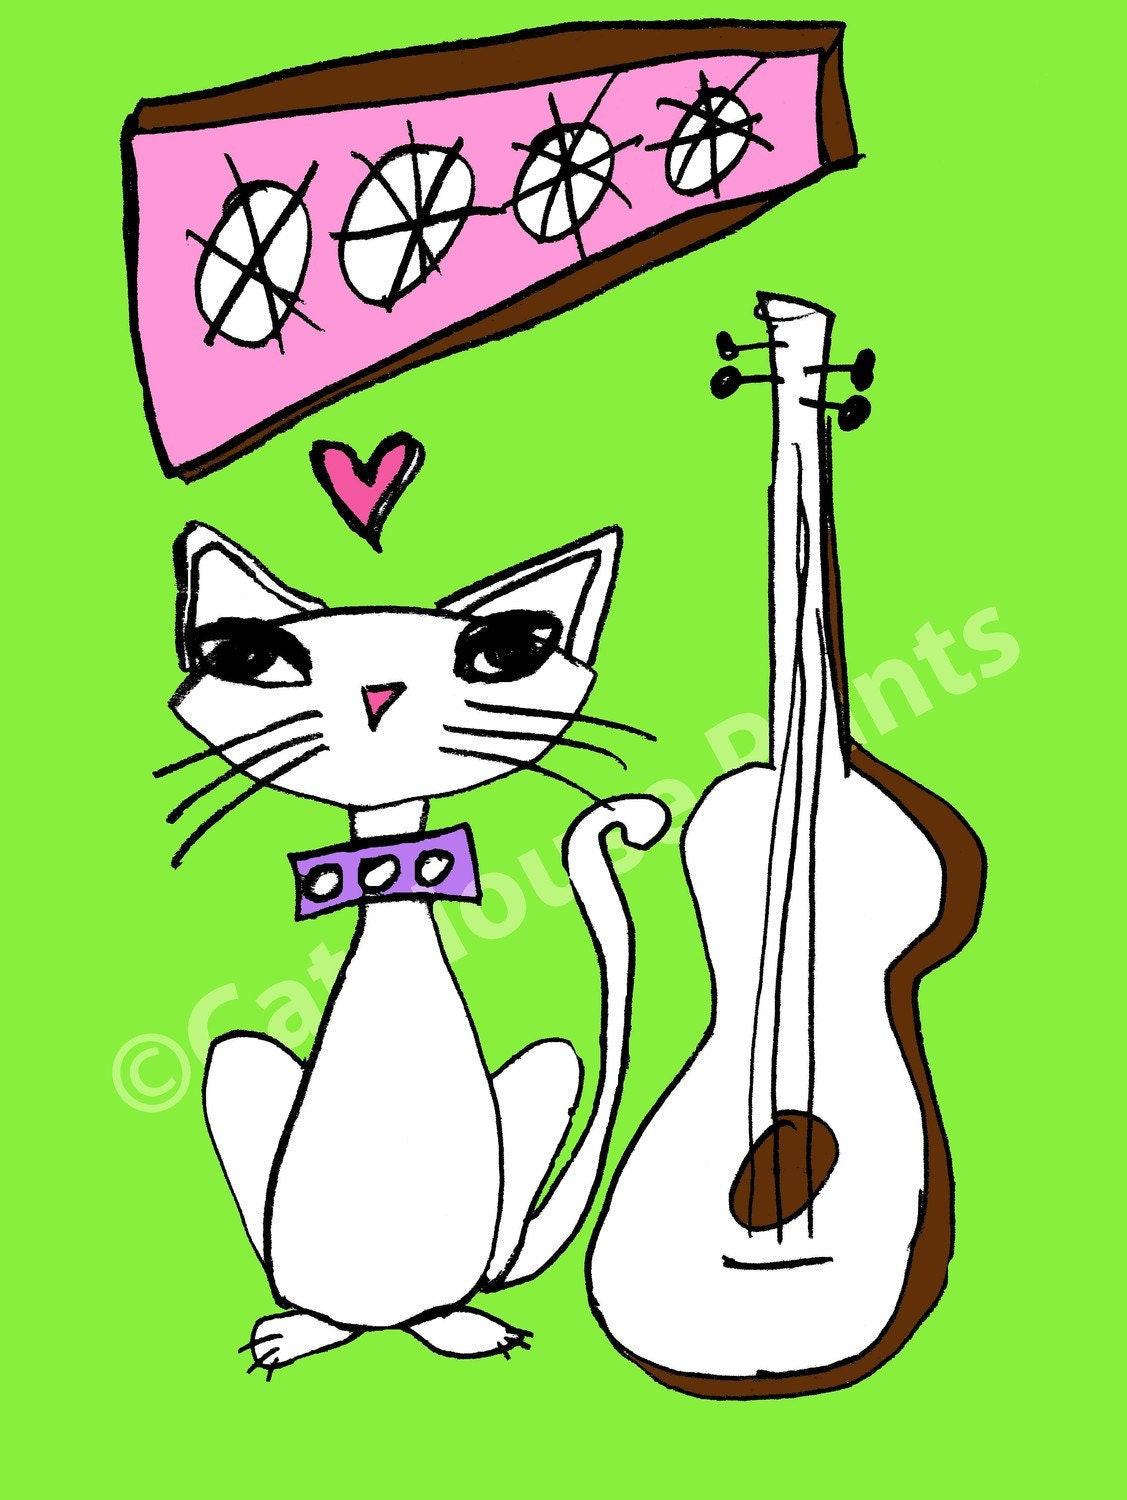 Green Guitar Cat - 8.5 x 11 print